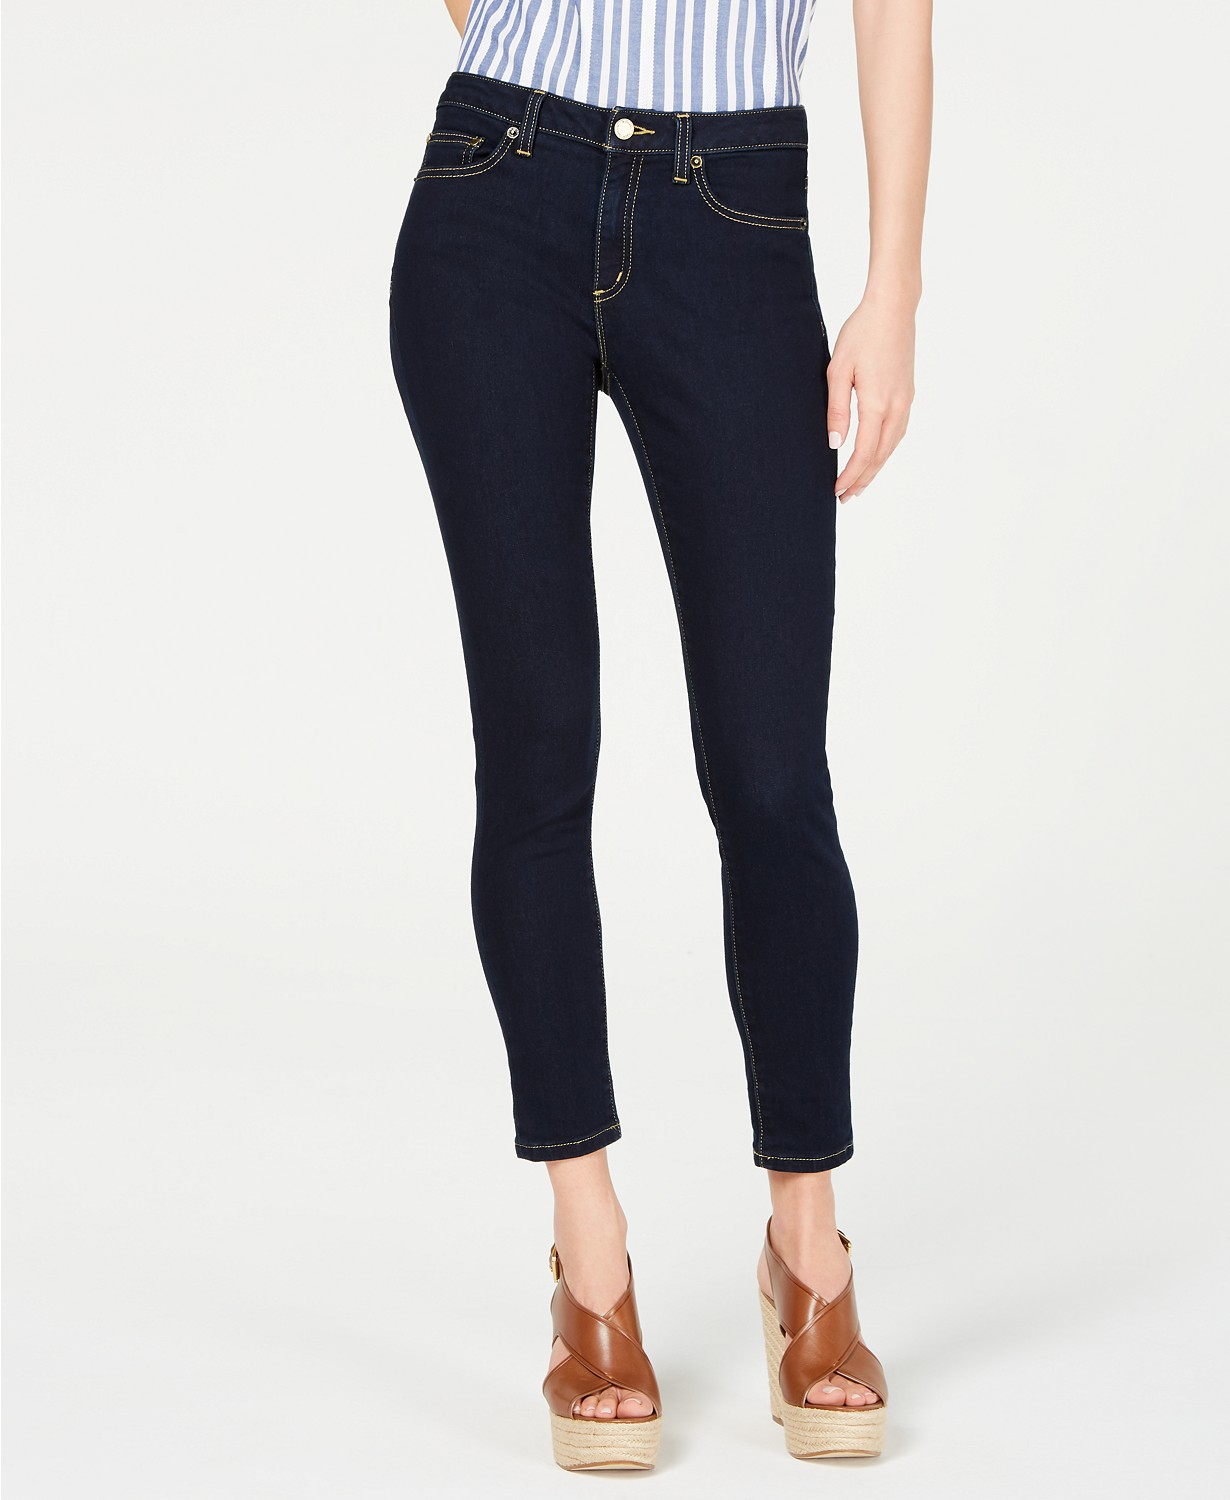 MICHAEL Michael Kors High-Rise Stretch Skinny Jean, in Regular & Petite Sizes